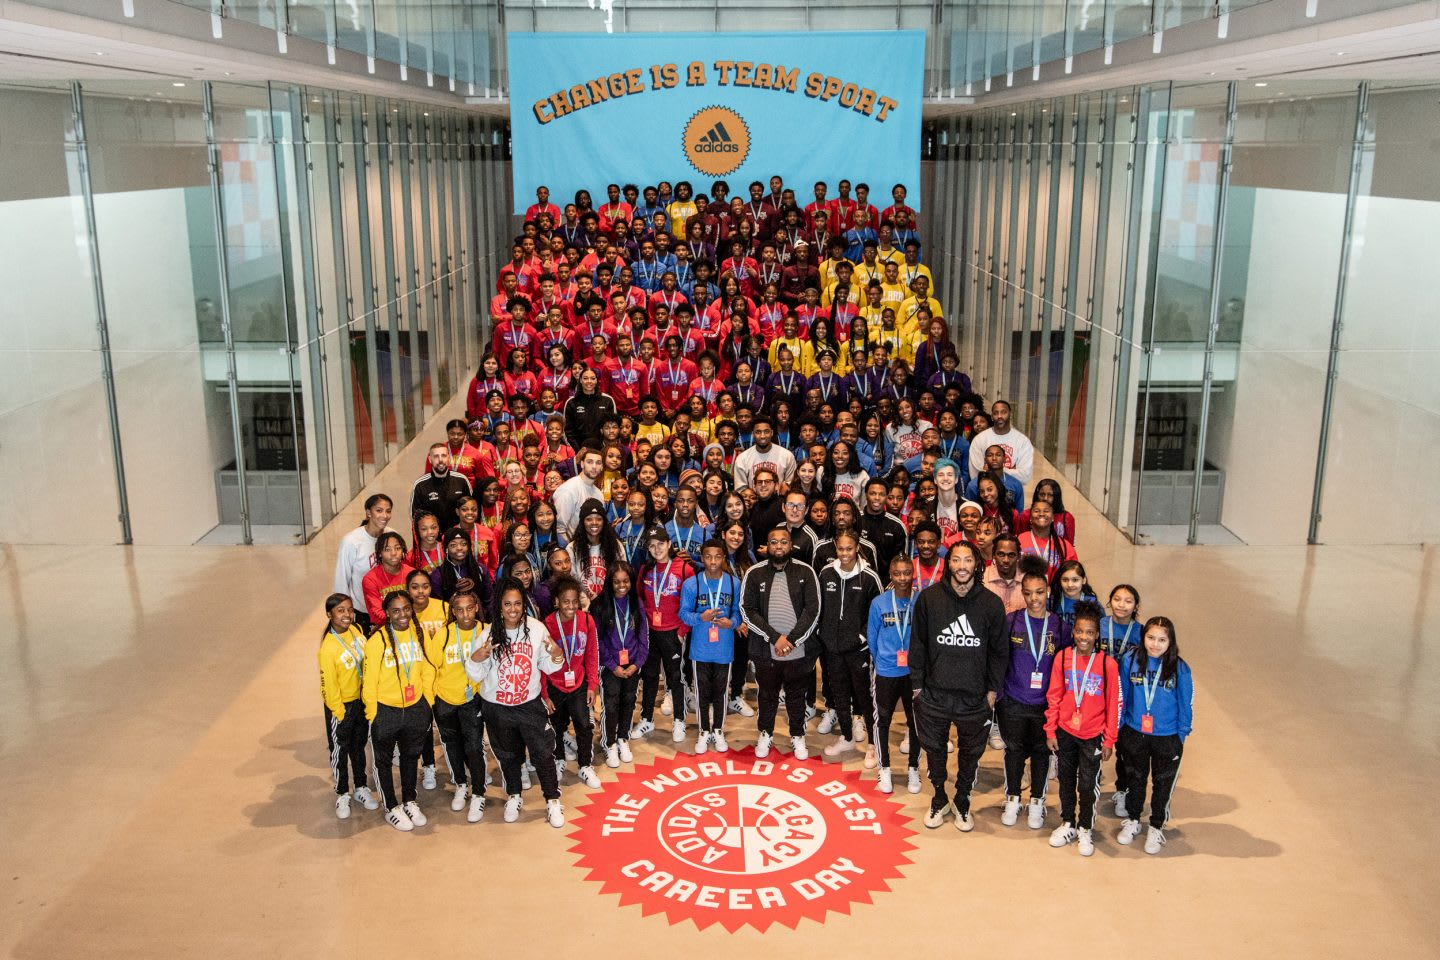 A huge group of young people standing together at the adidas career day. career, team work, team sport, adidas, success, leadership, journey, GamePlan A.